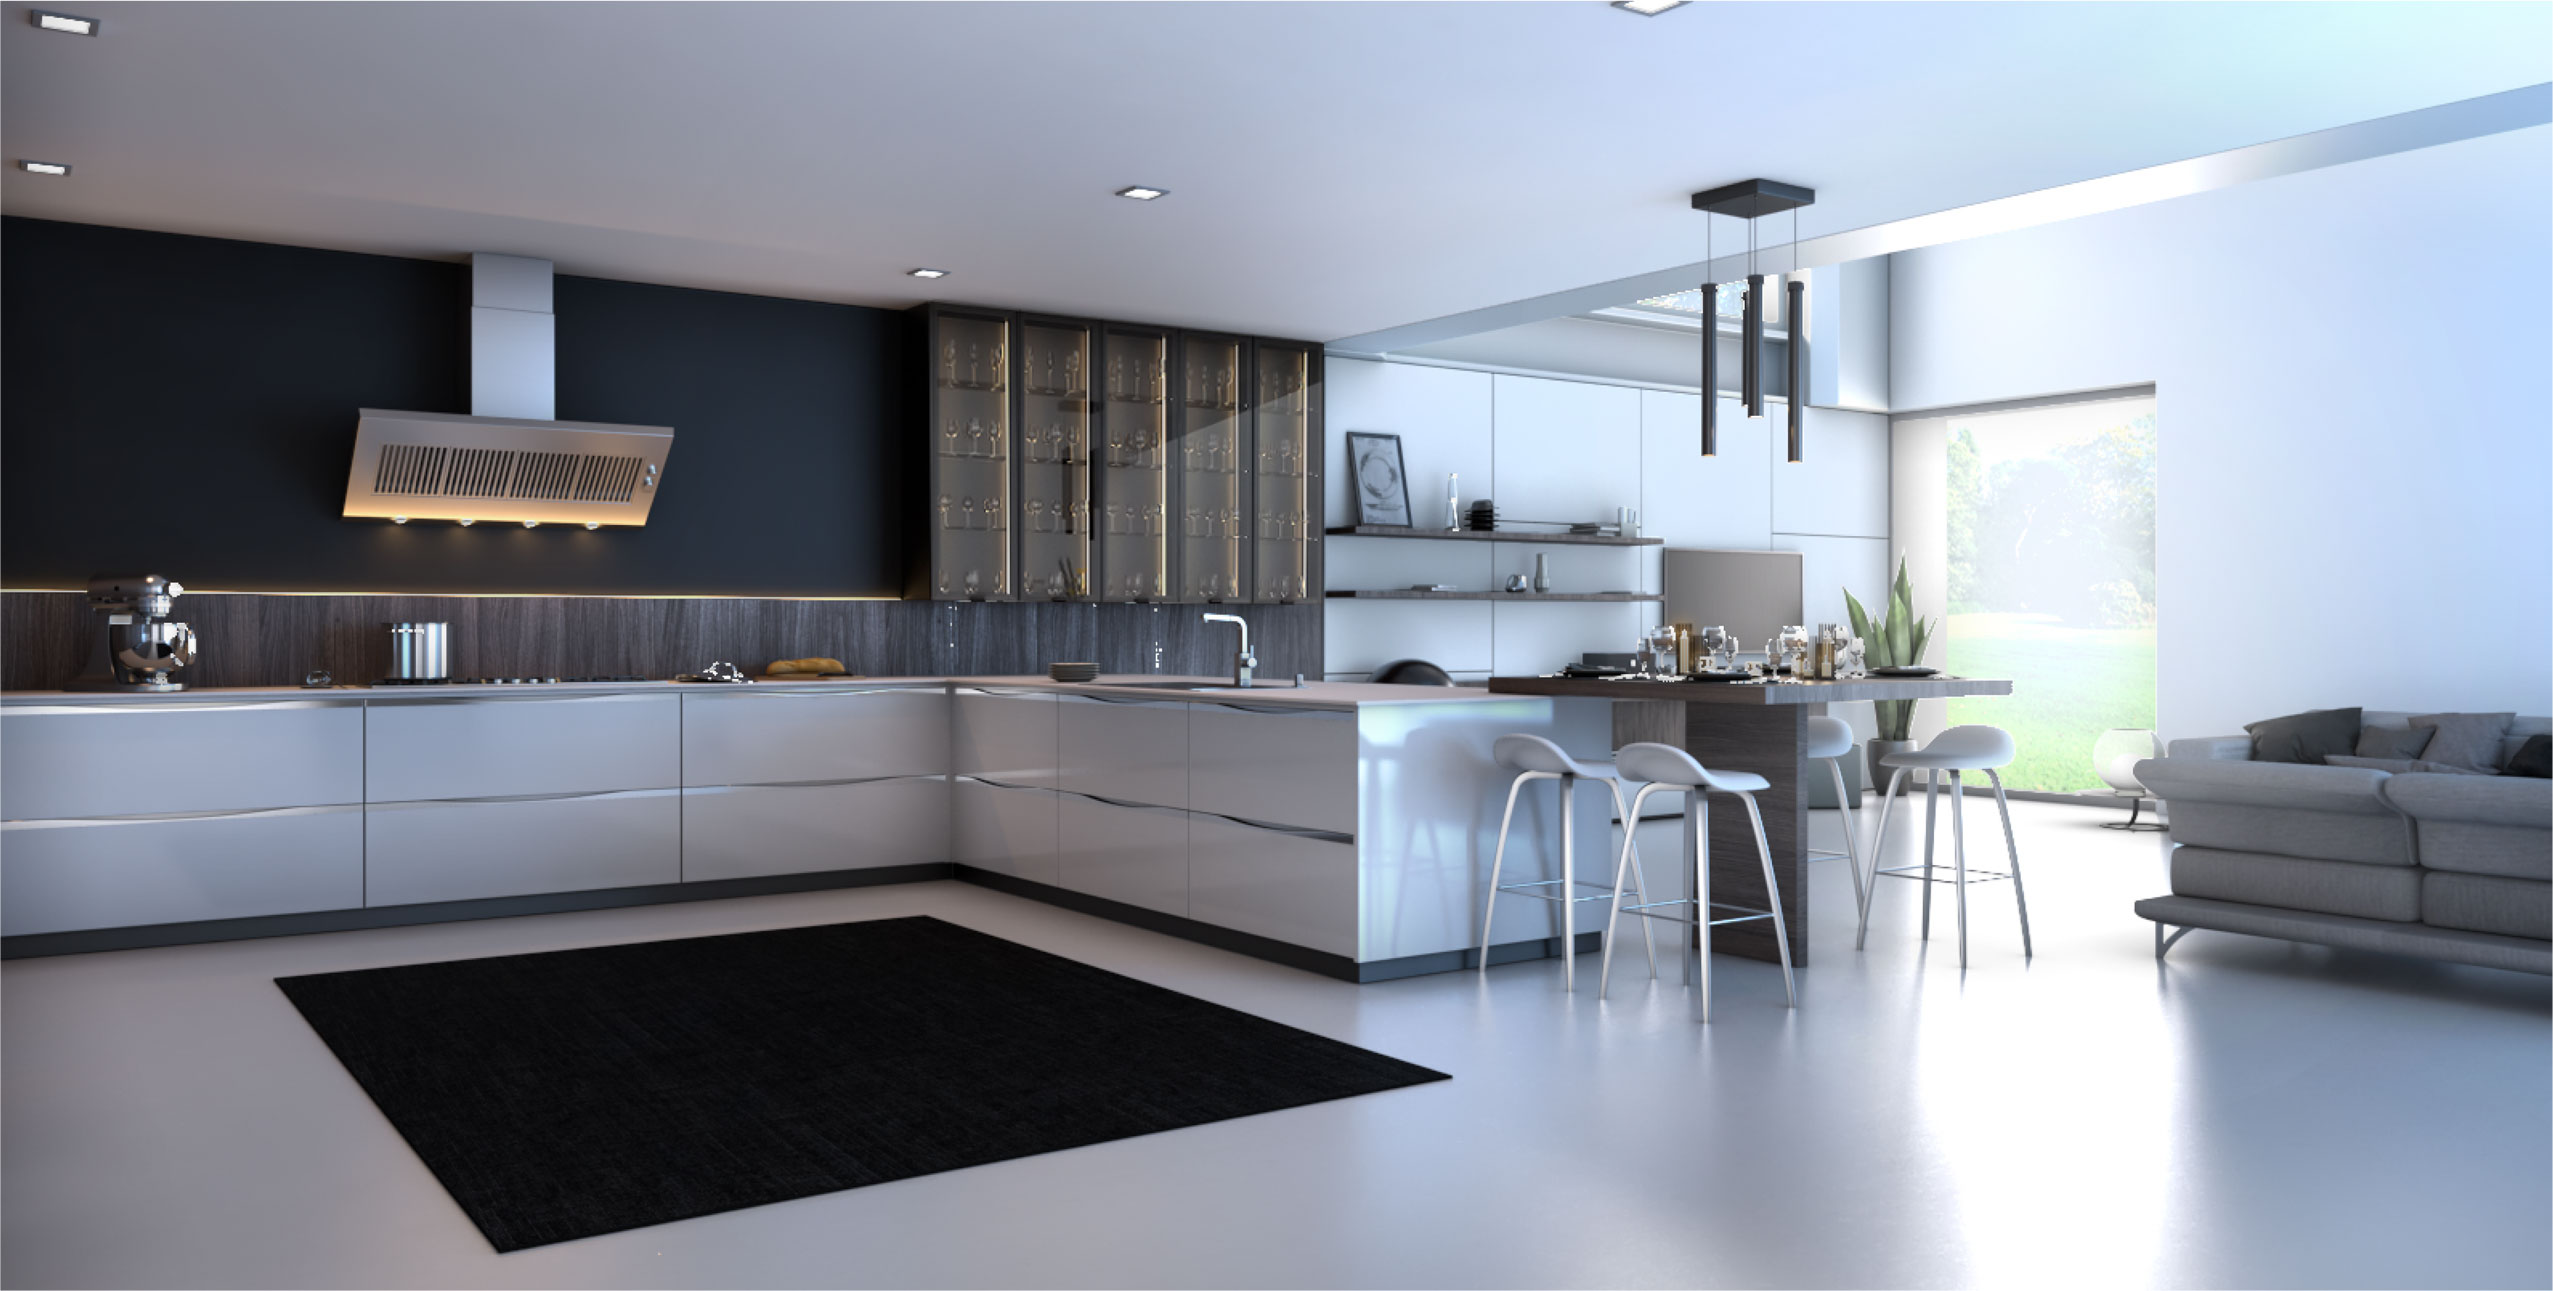 ... Distinctive Angles That Brings Out The Beauty Of All Details To The  Creative Hidden Kitchen Storage Solutions That Making The Cooking More  Enjoyable.